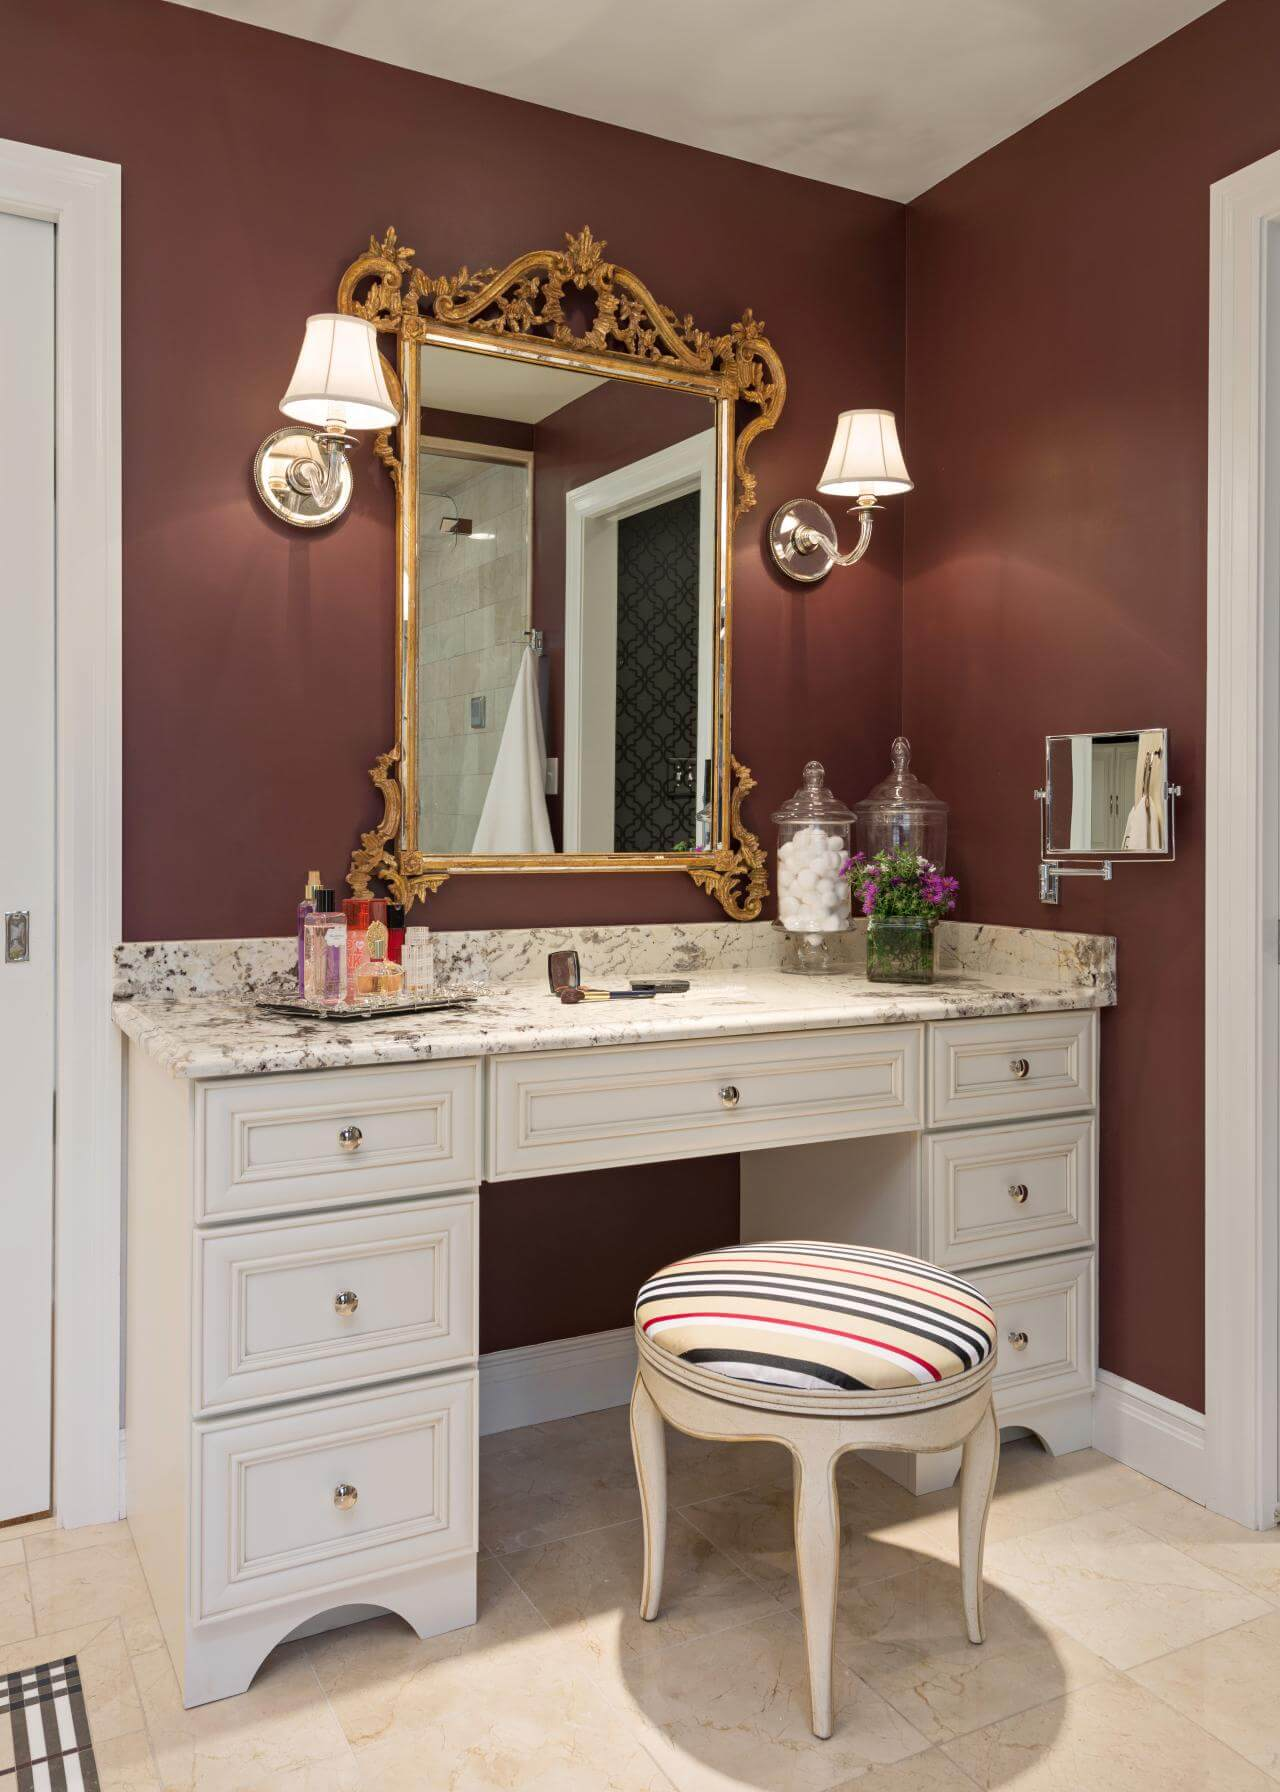 Delightful Marble Topped Vanity With Baroque Style Mirror